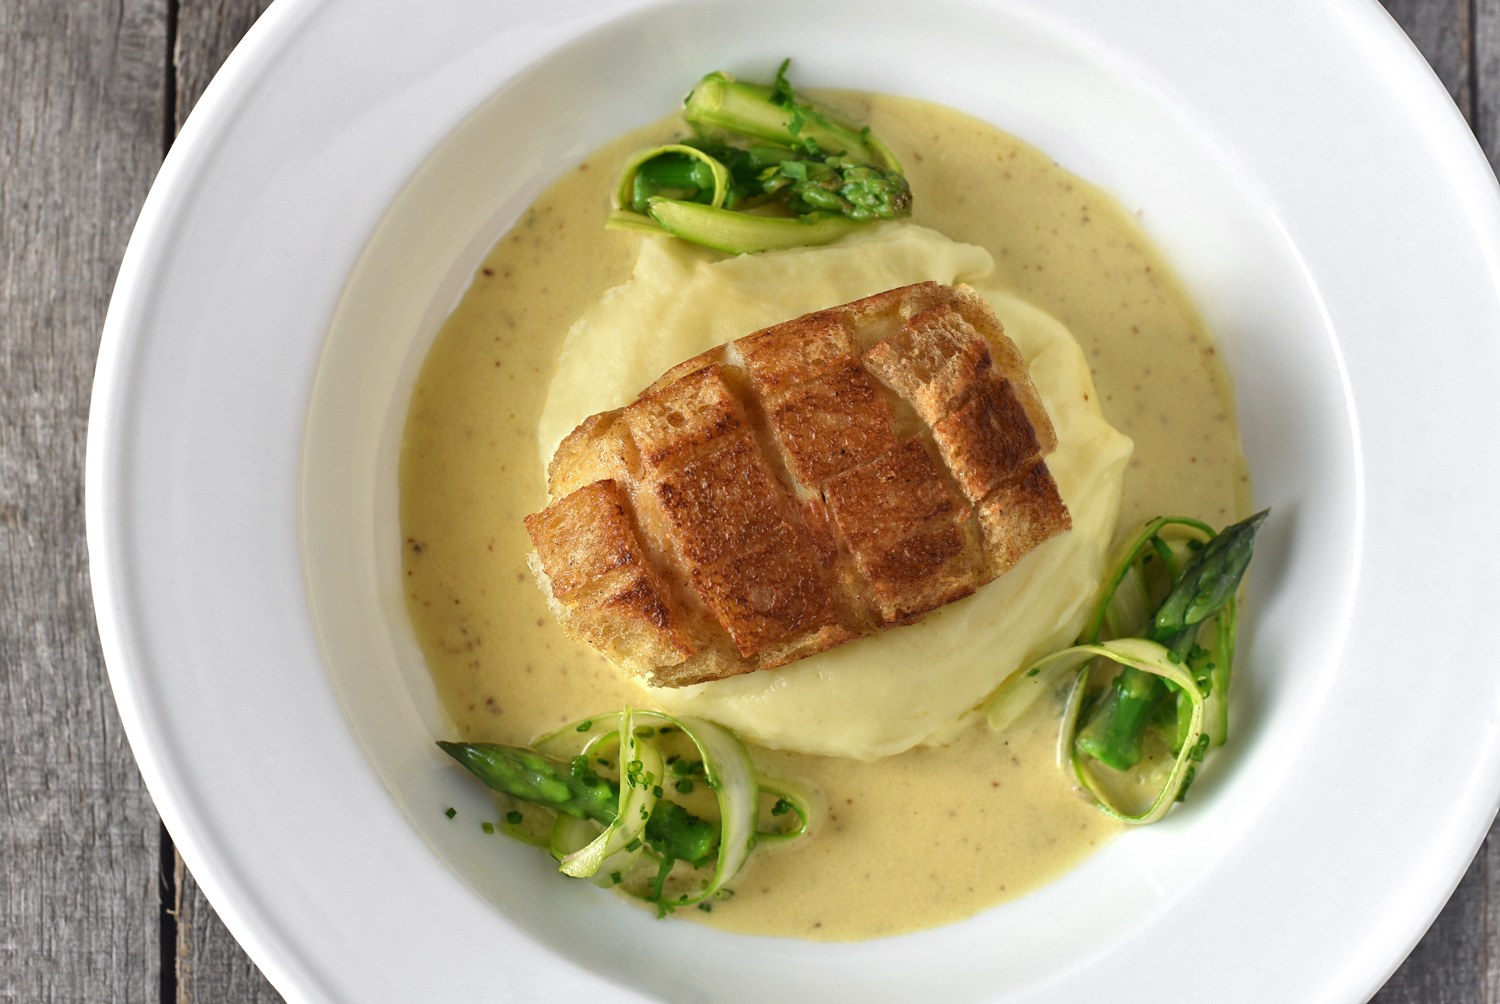 Russian Food - Crab Pozharsky, Mustard Sauce, Aligot and Asparagus